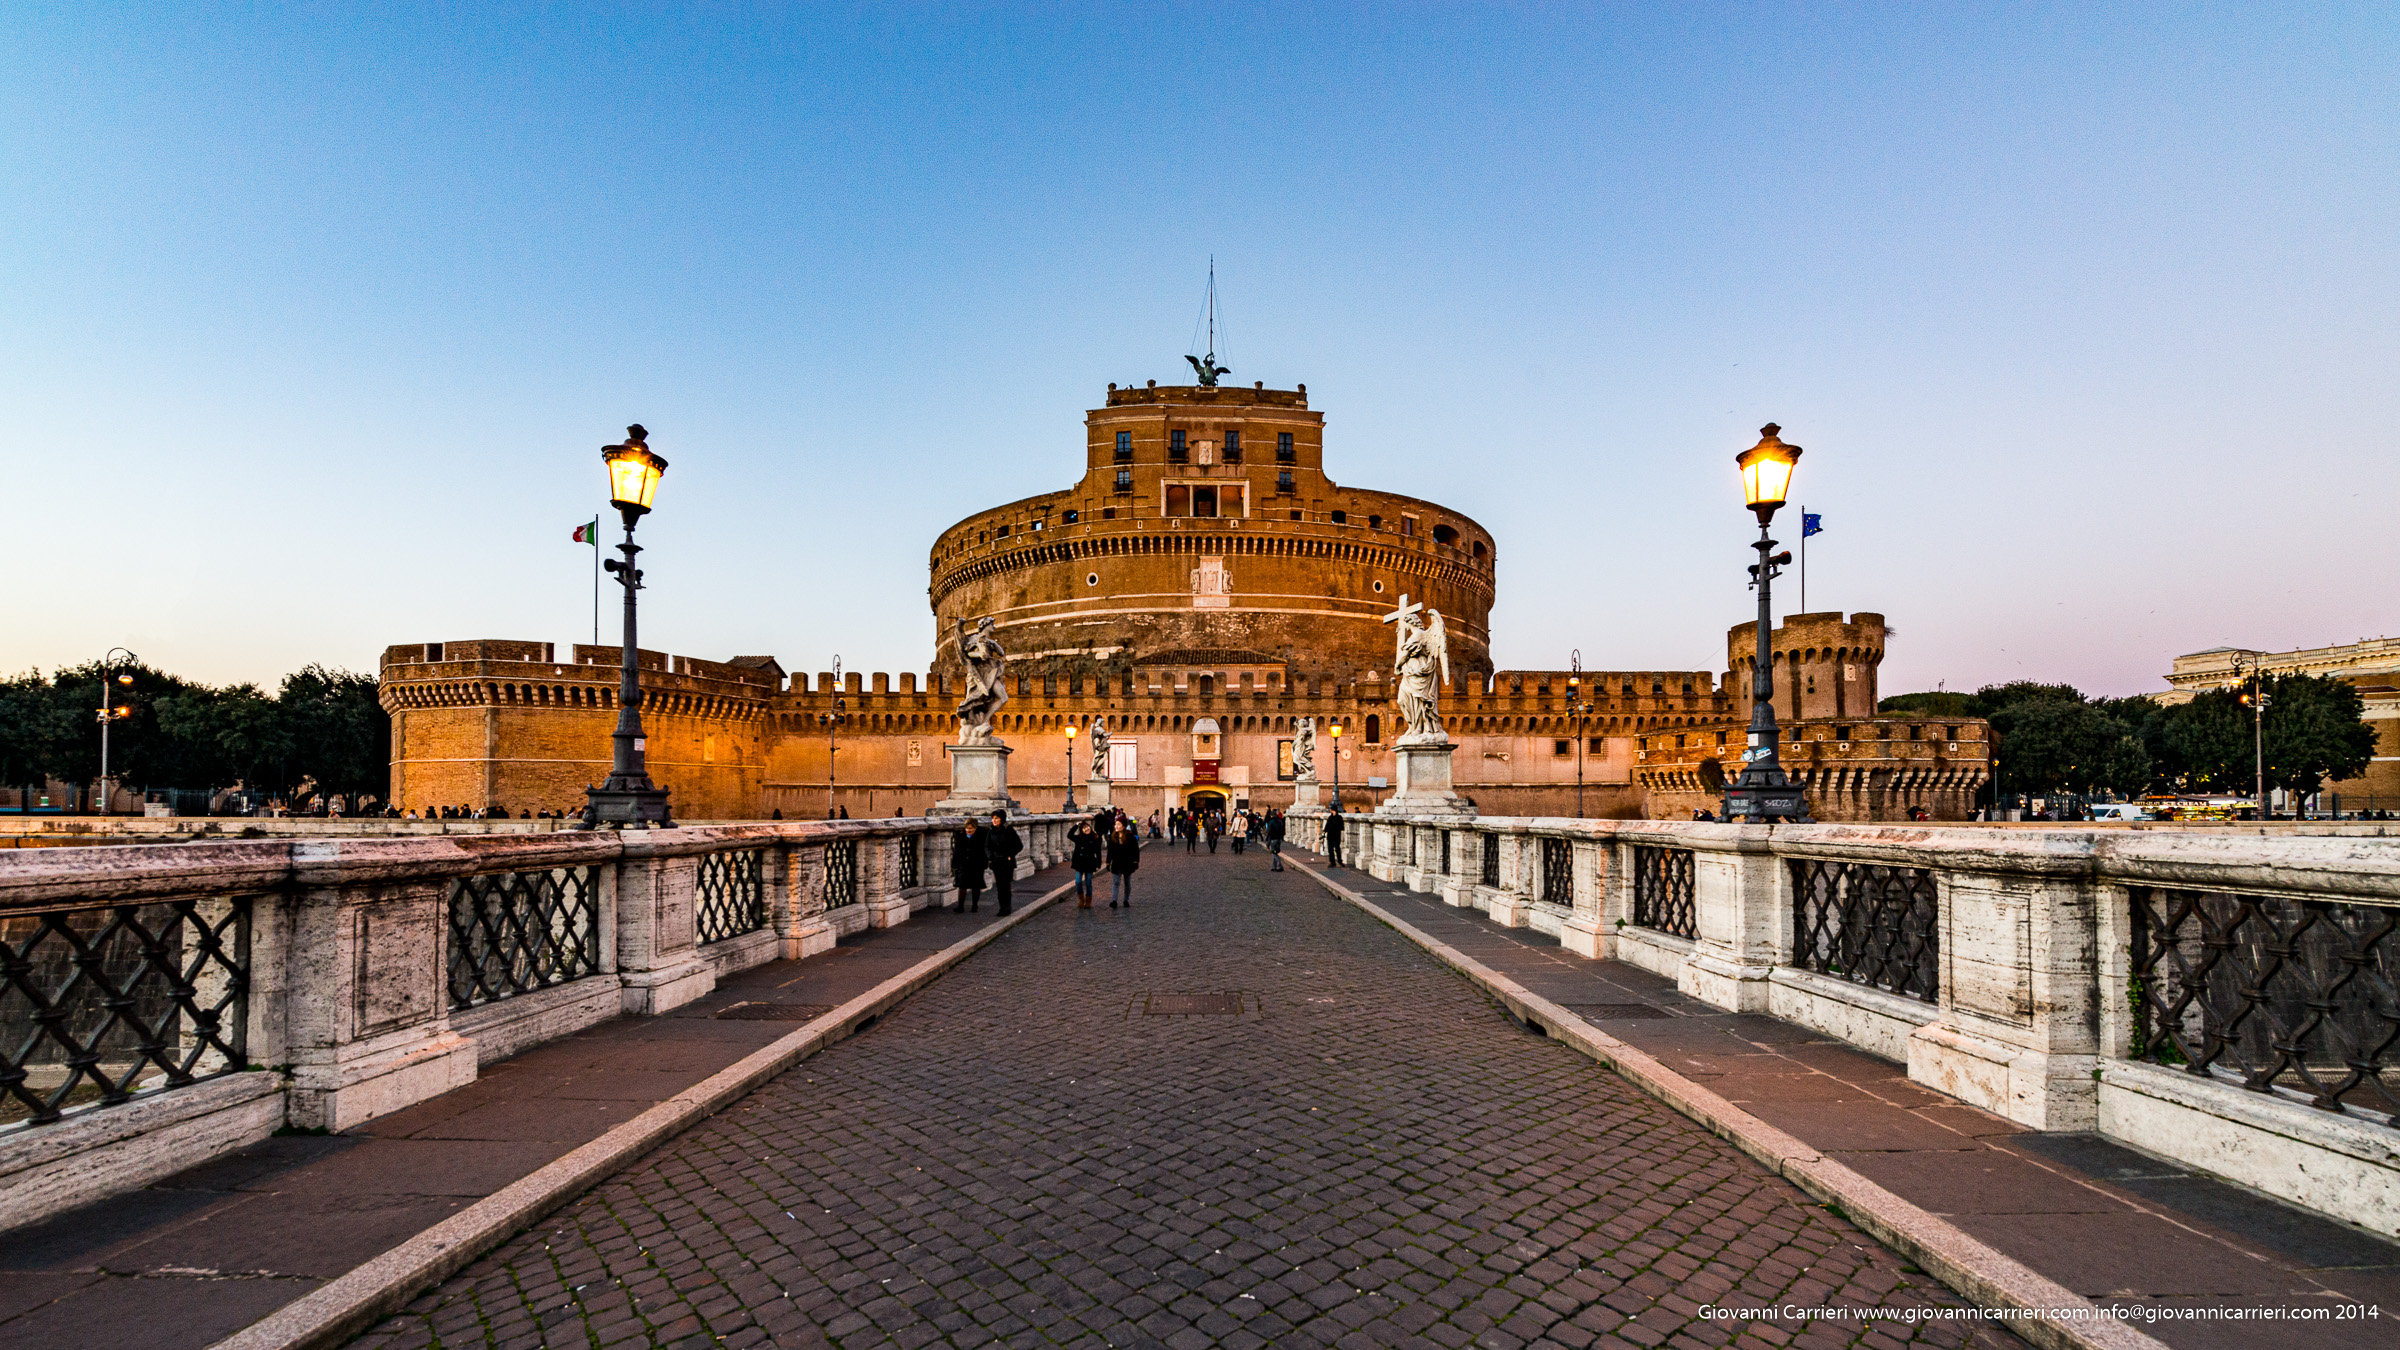 Castel Sant'Angelo seen from the bridge of the same name